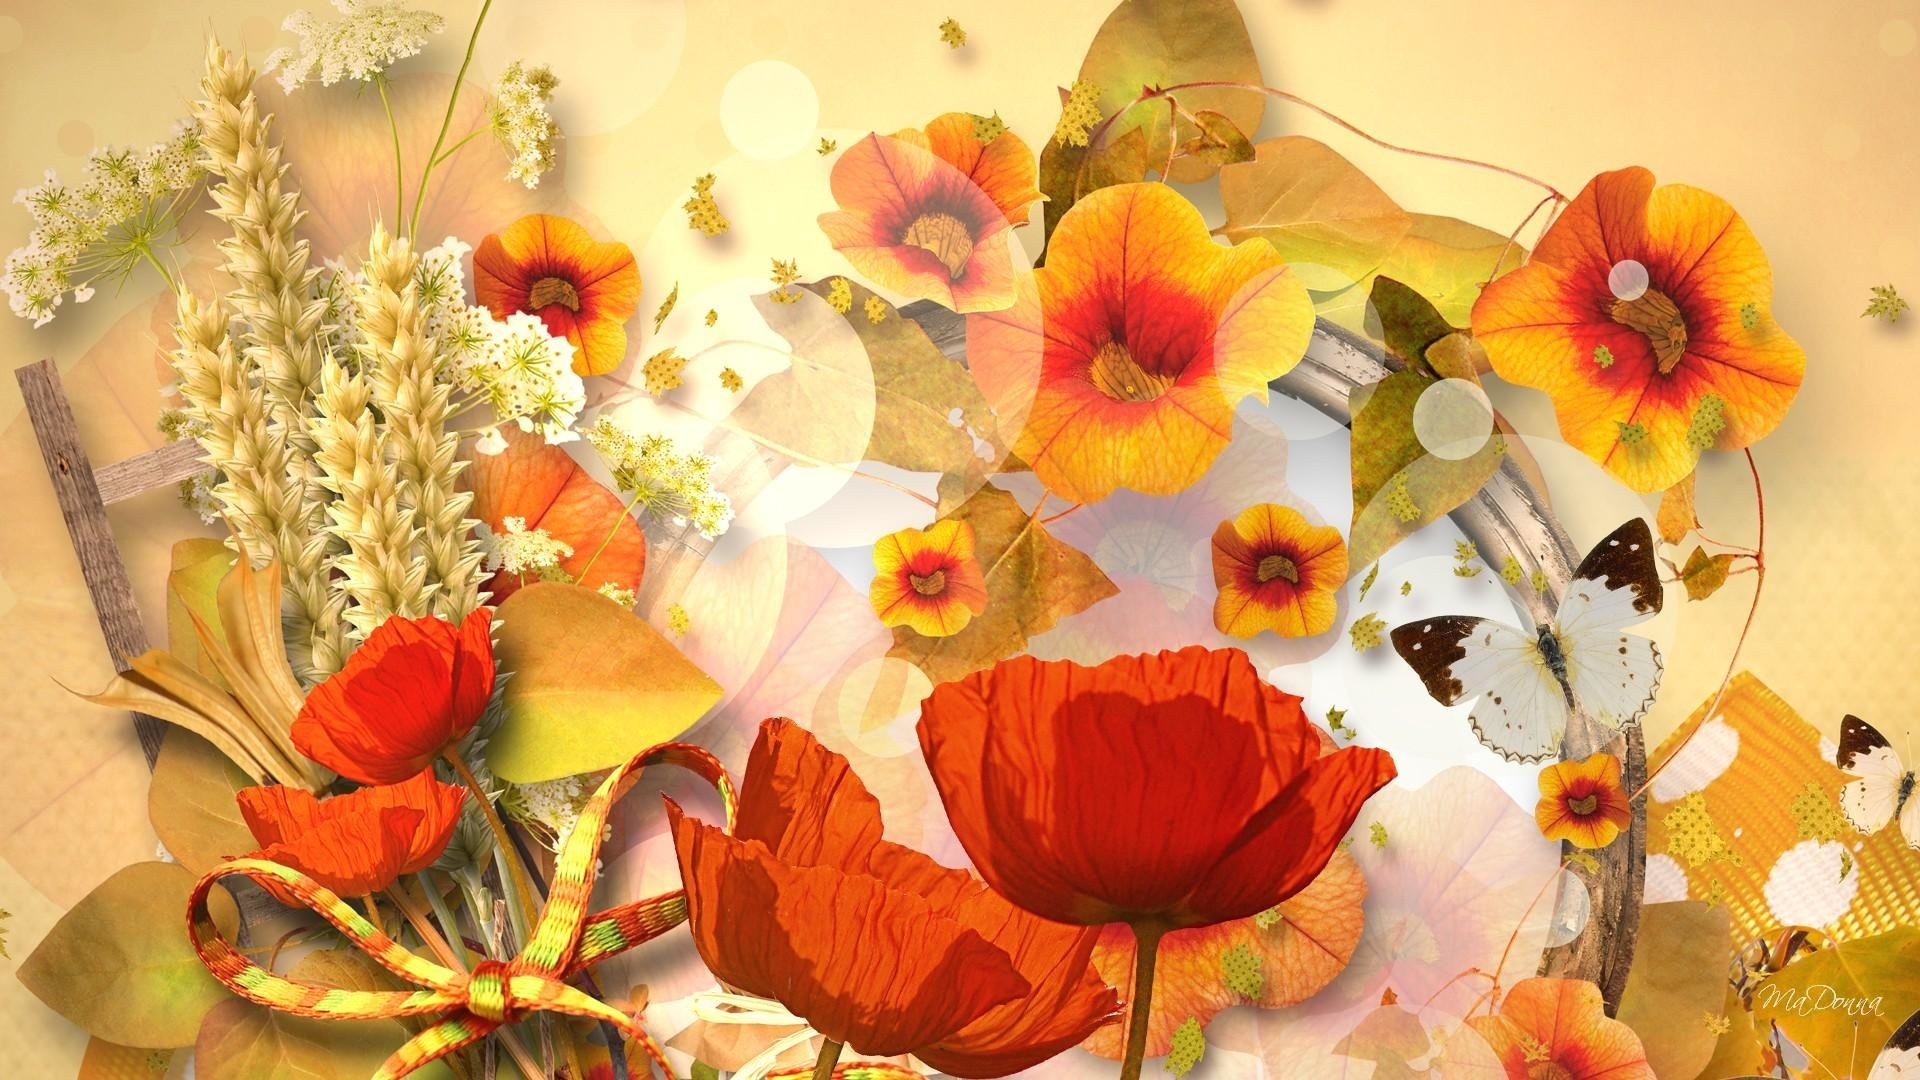 fall flowers wallpaper by - photo #29